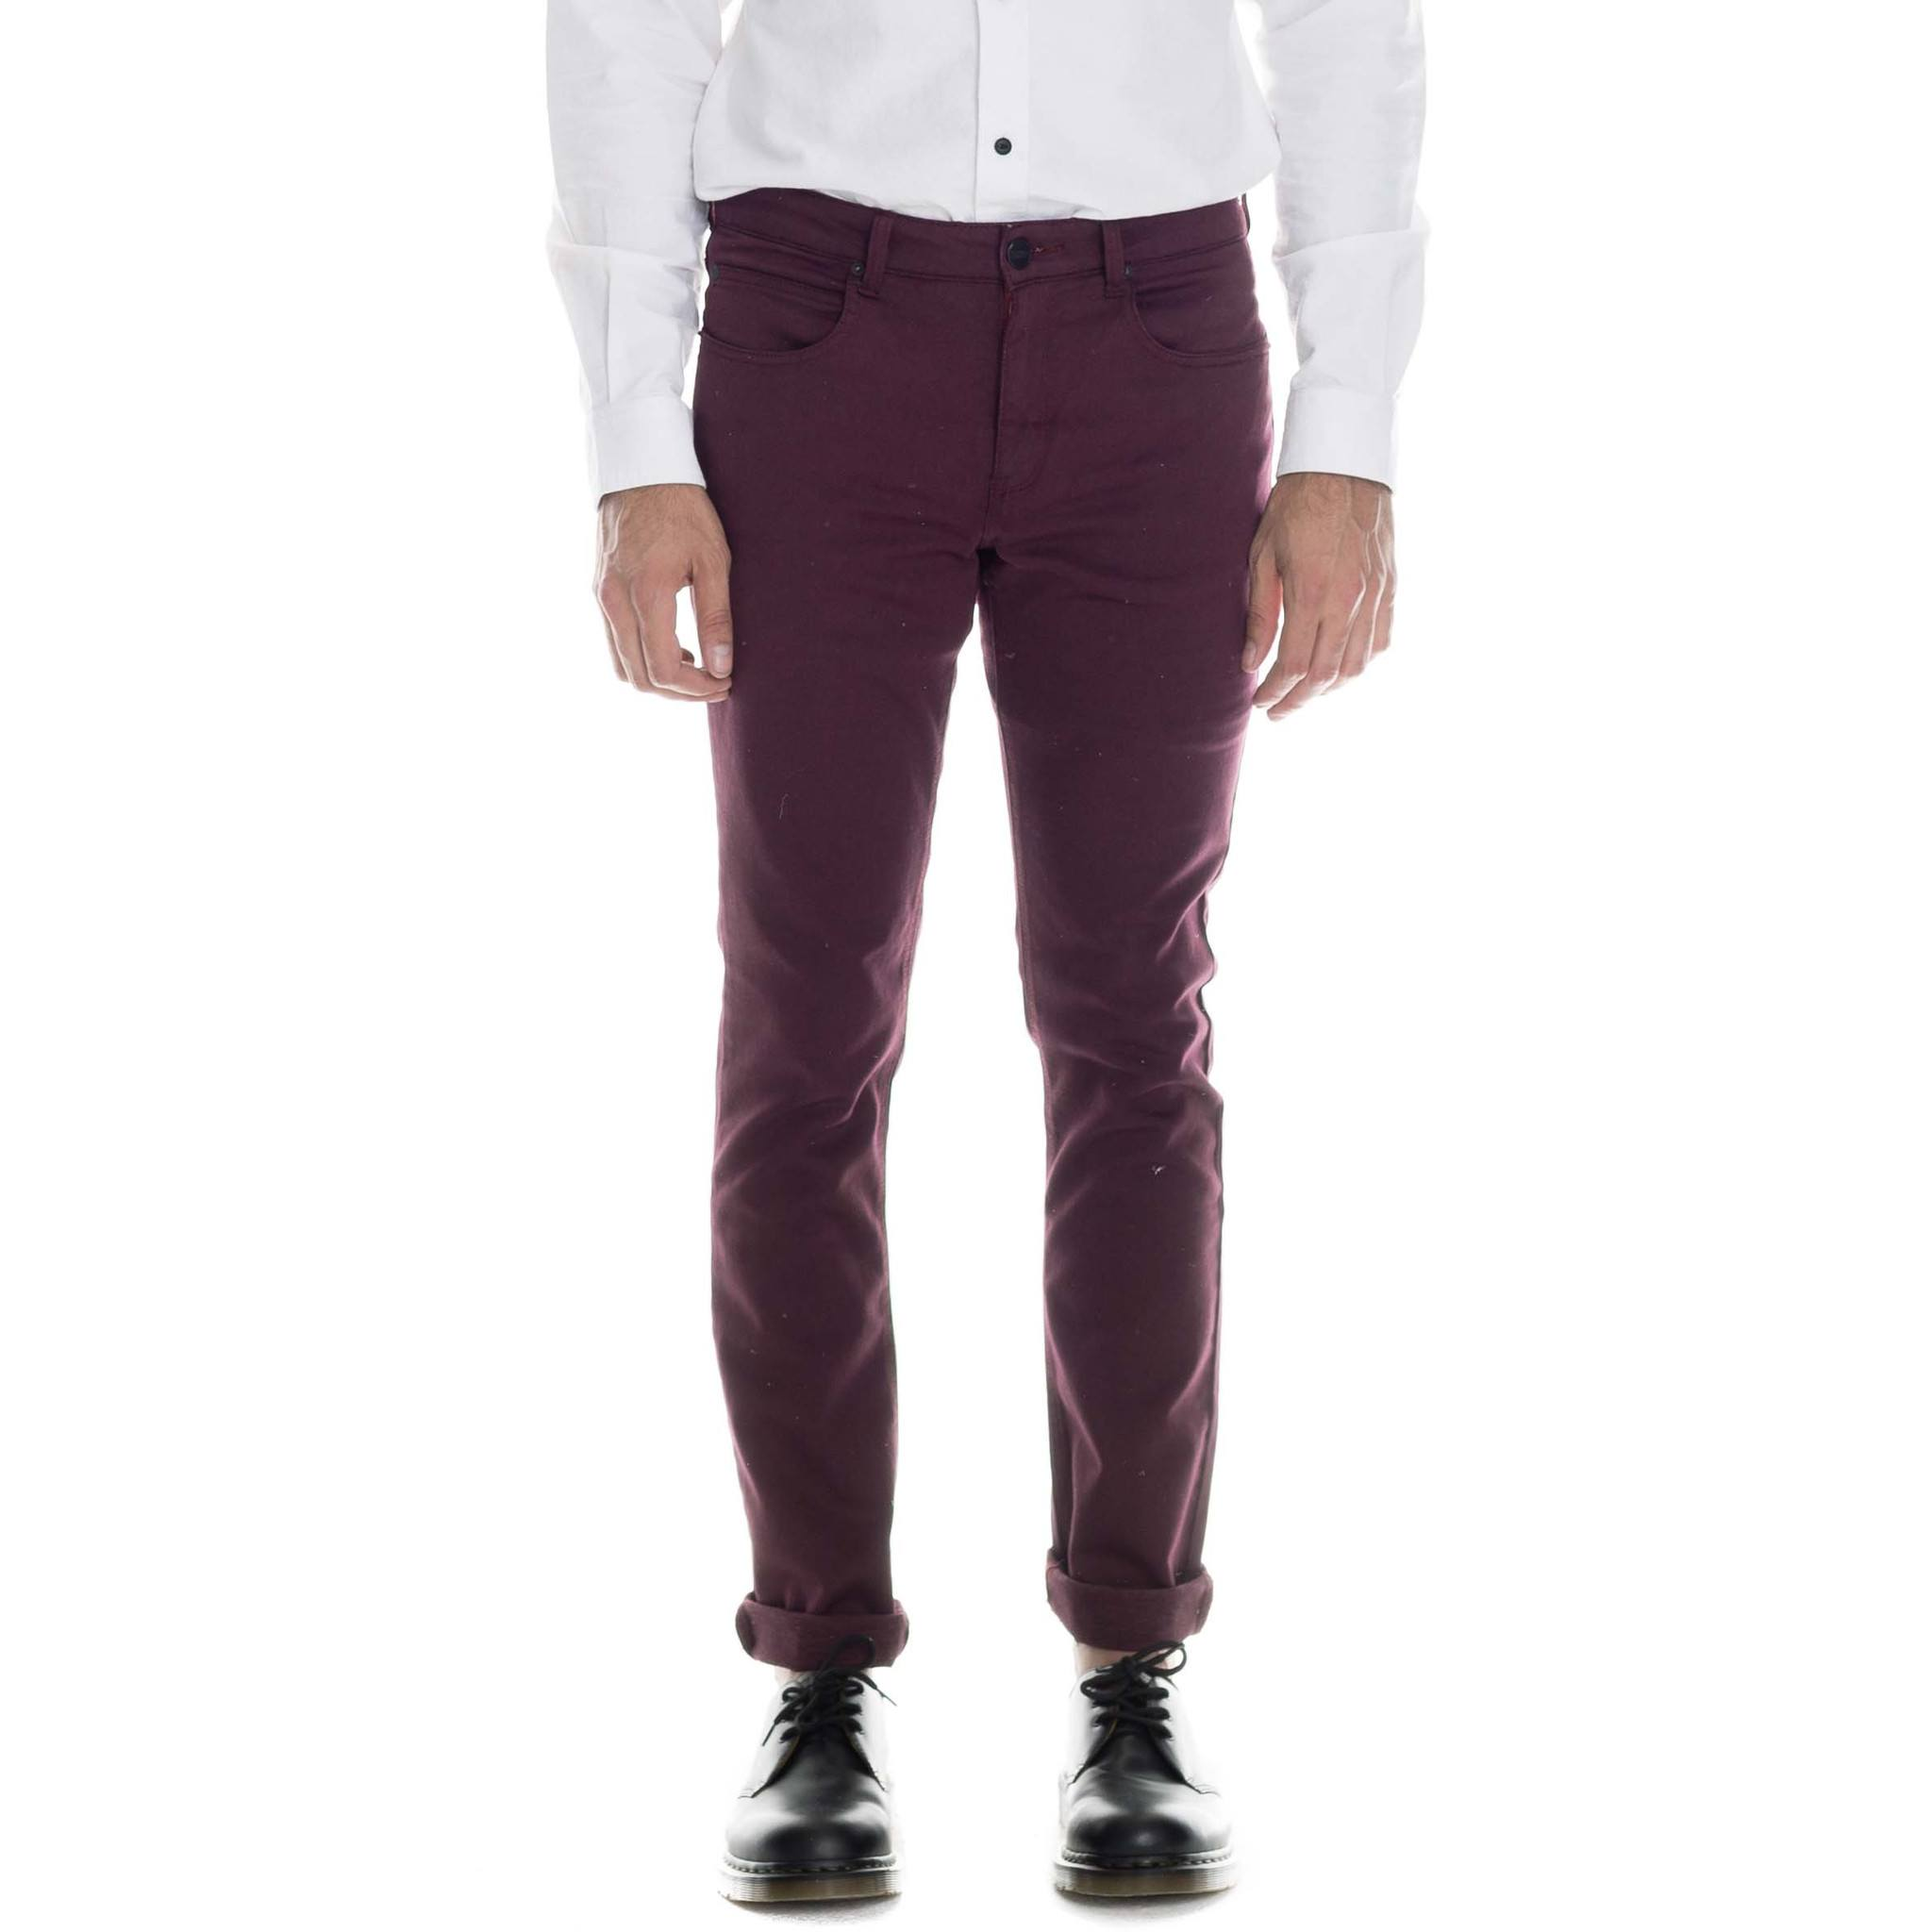 NOW Denim - Bordeaux